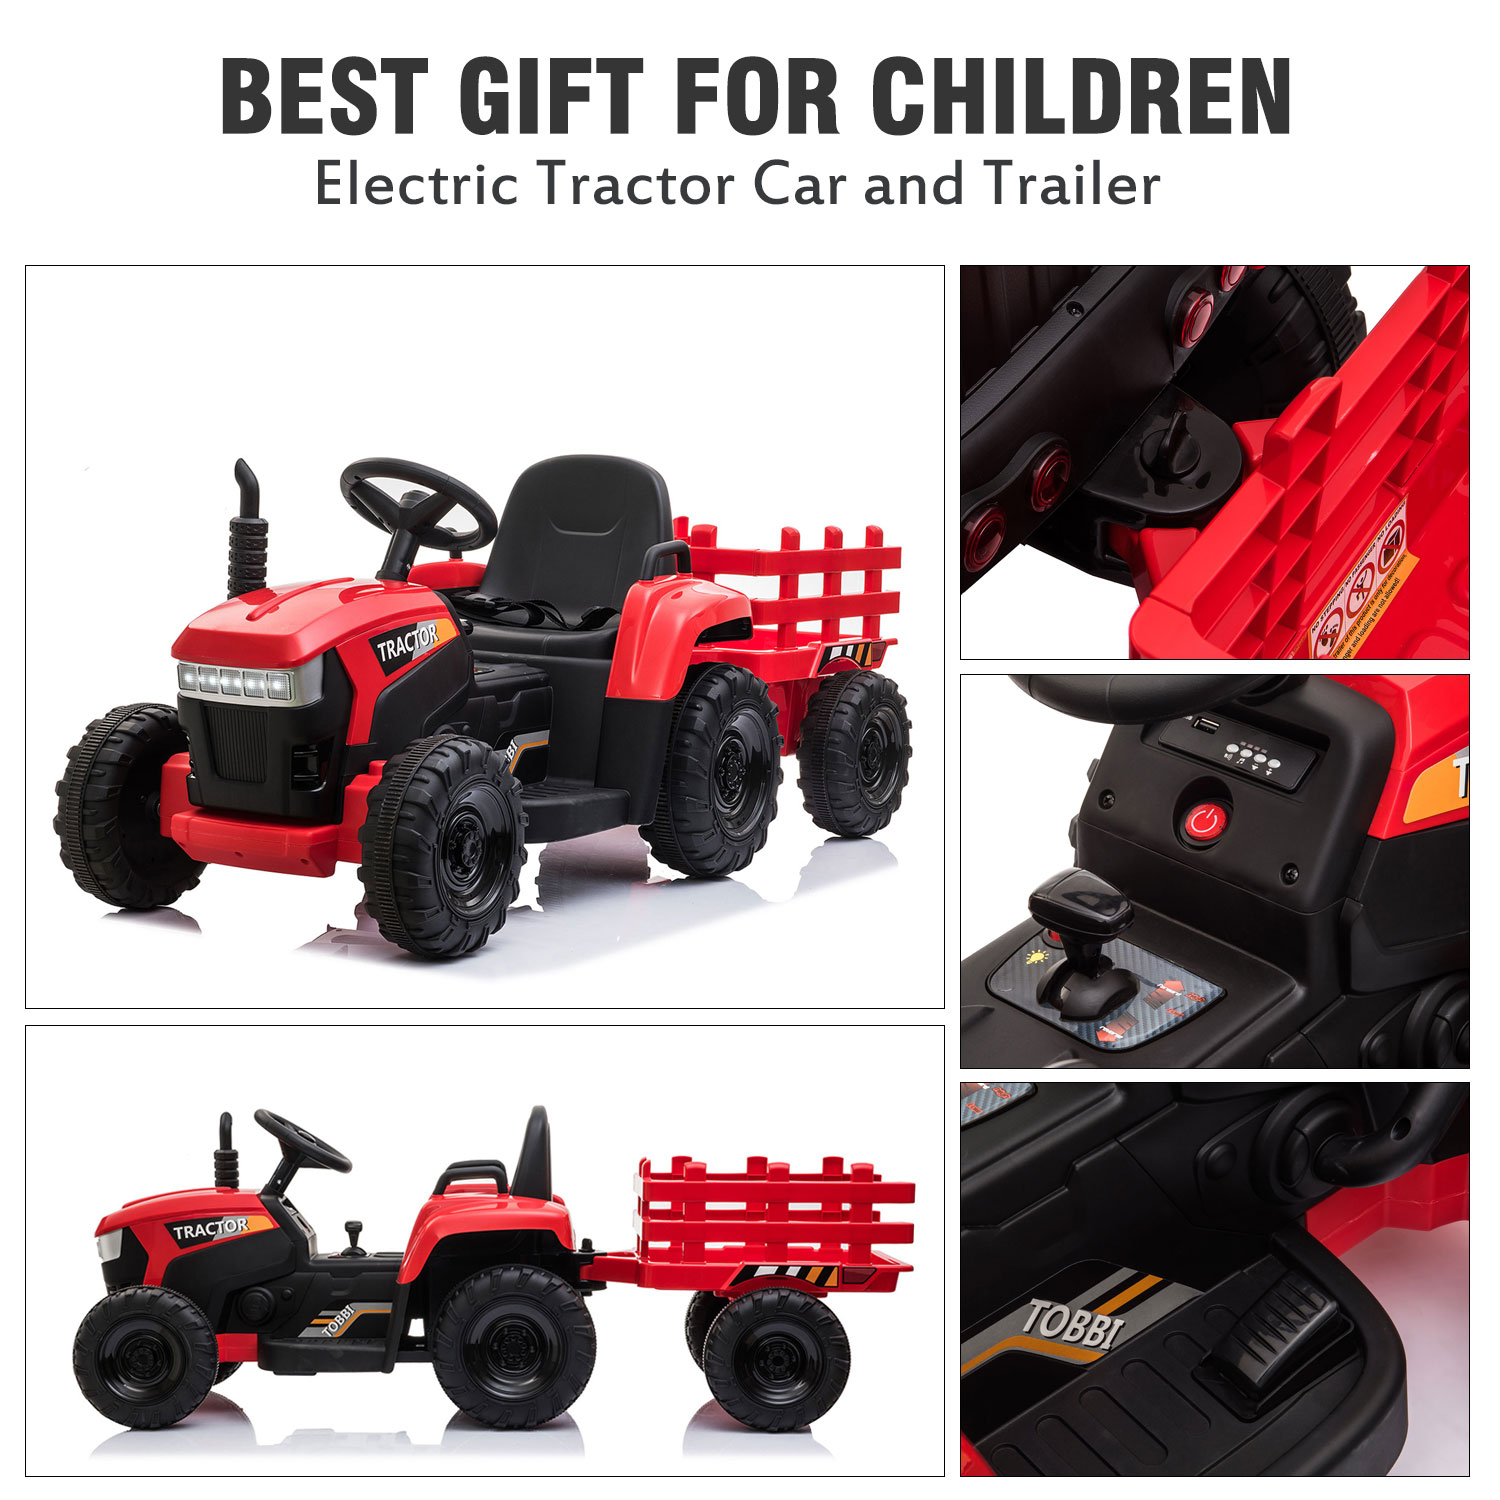 12V Electric Kids Ride-On Tractor with Trailer, Red 2 10